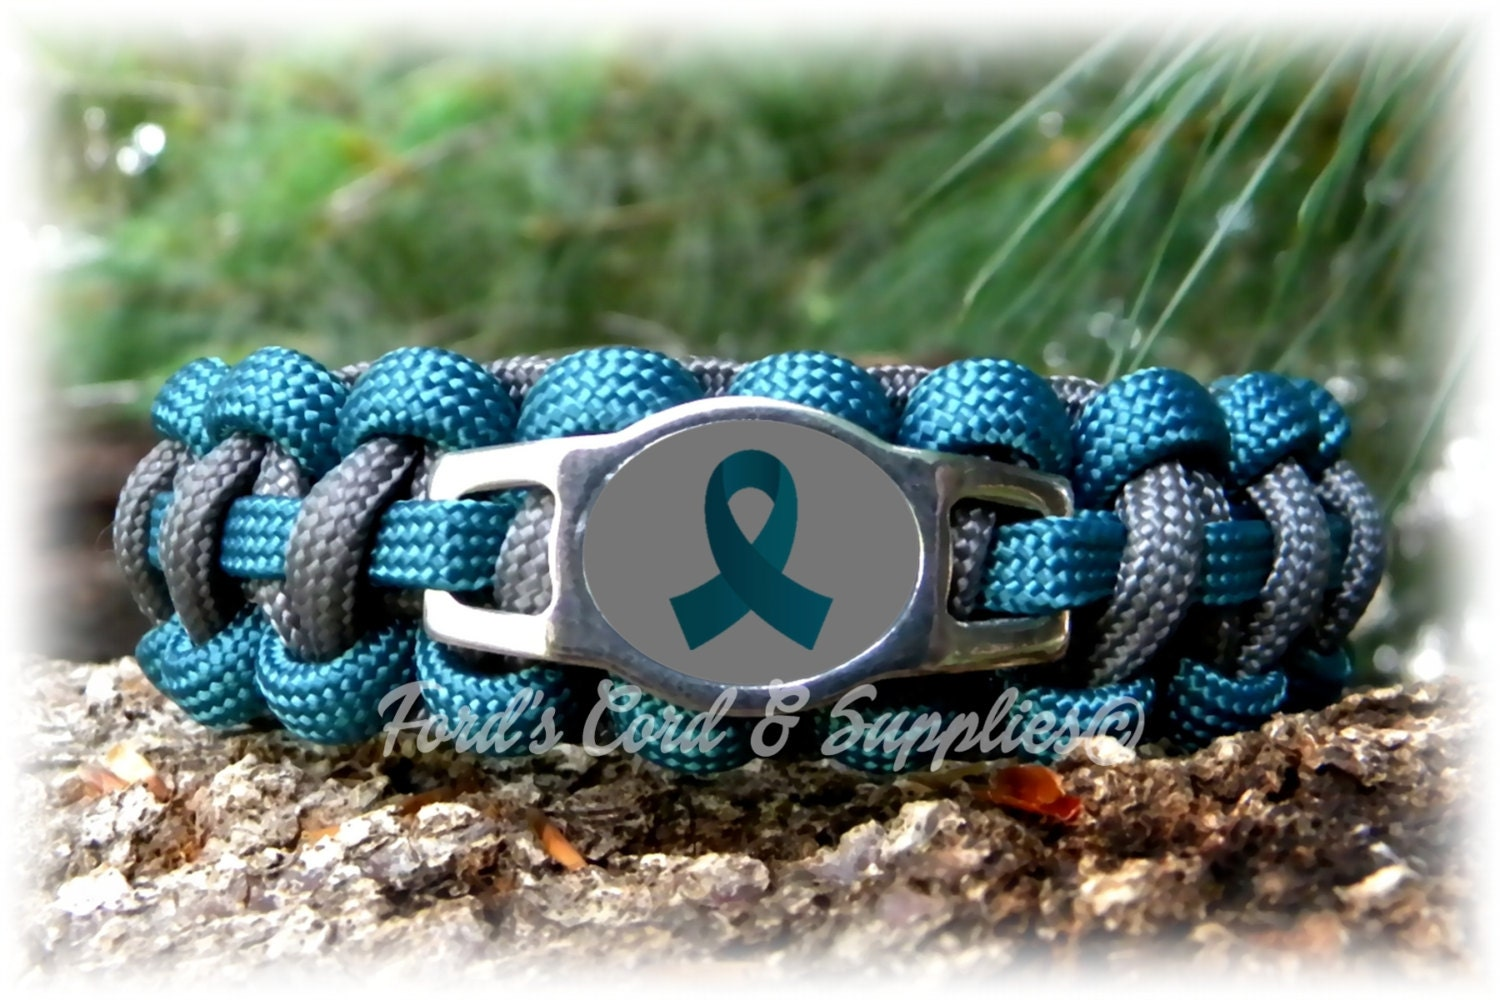 transformation luxury nftw bracelet myasthenia mg warrior products the gravis asset charm